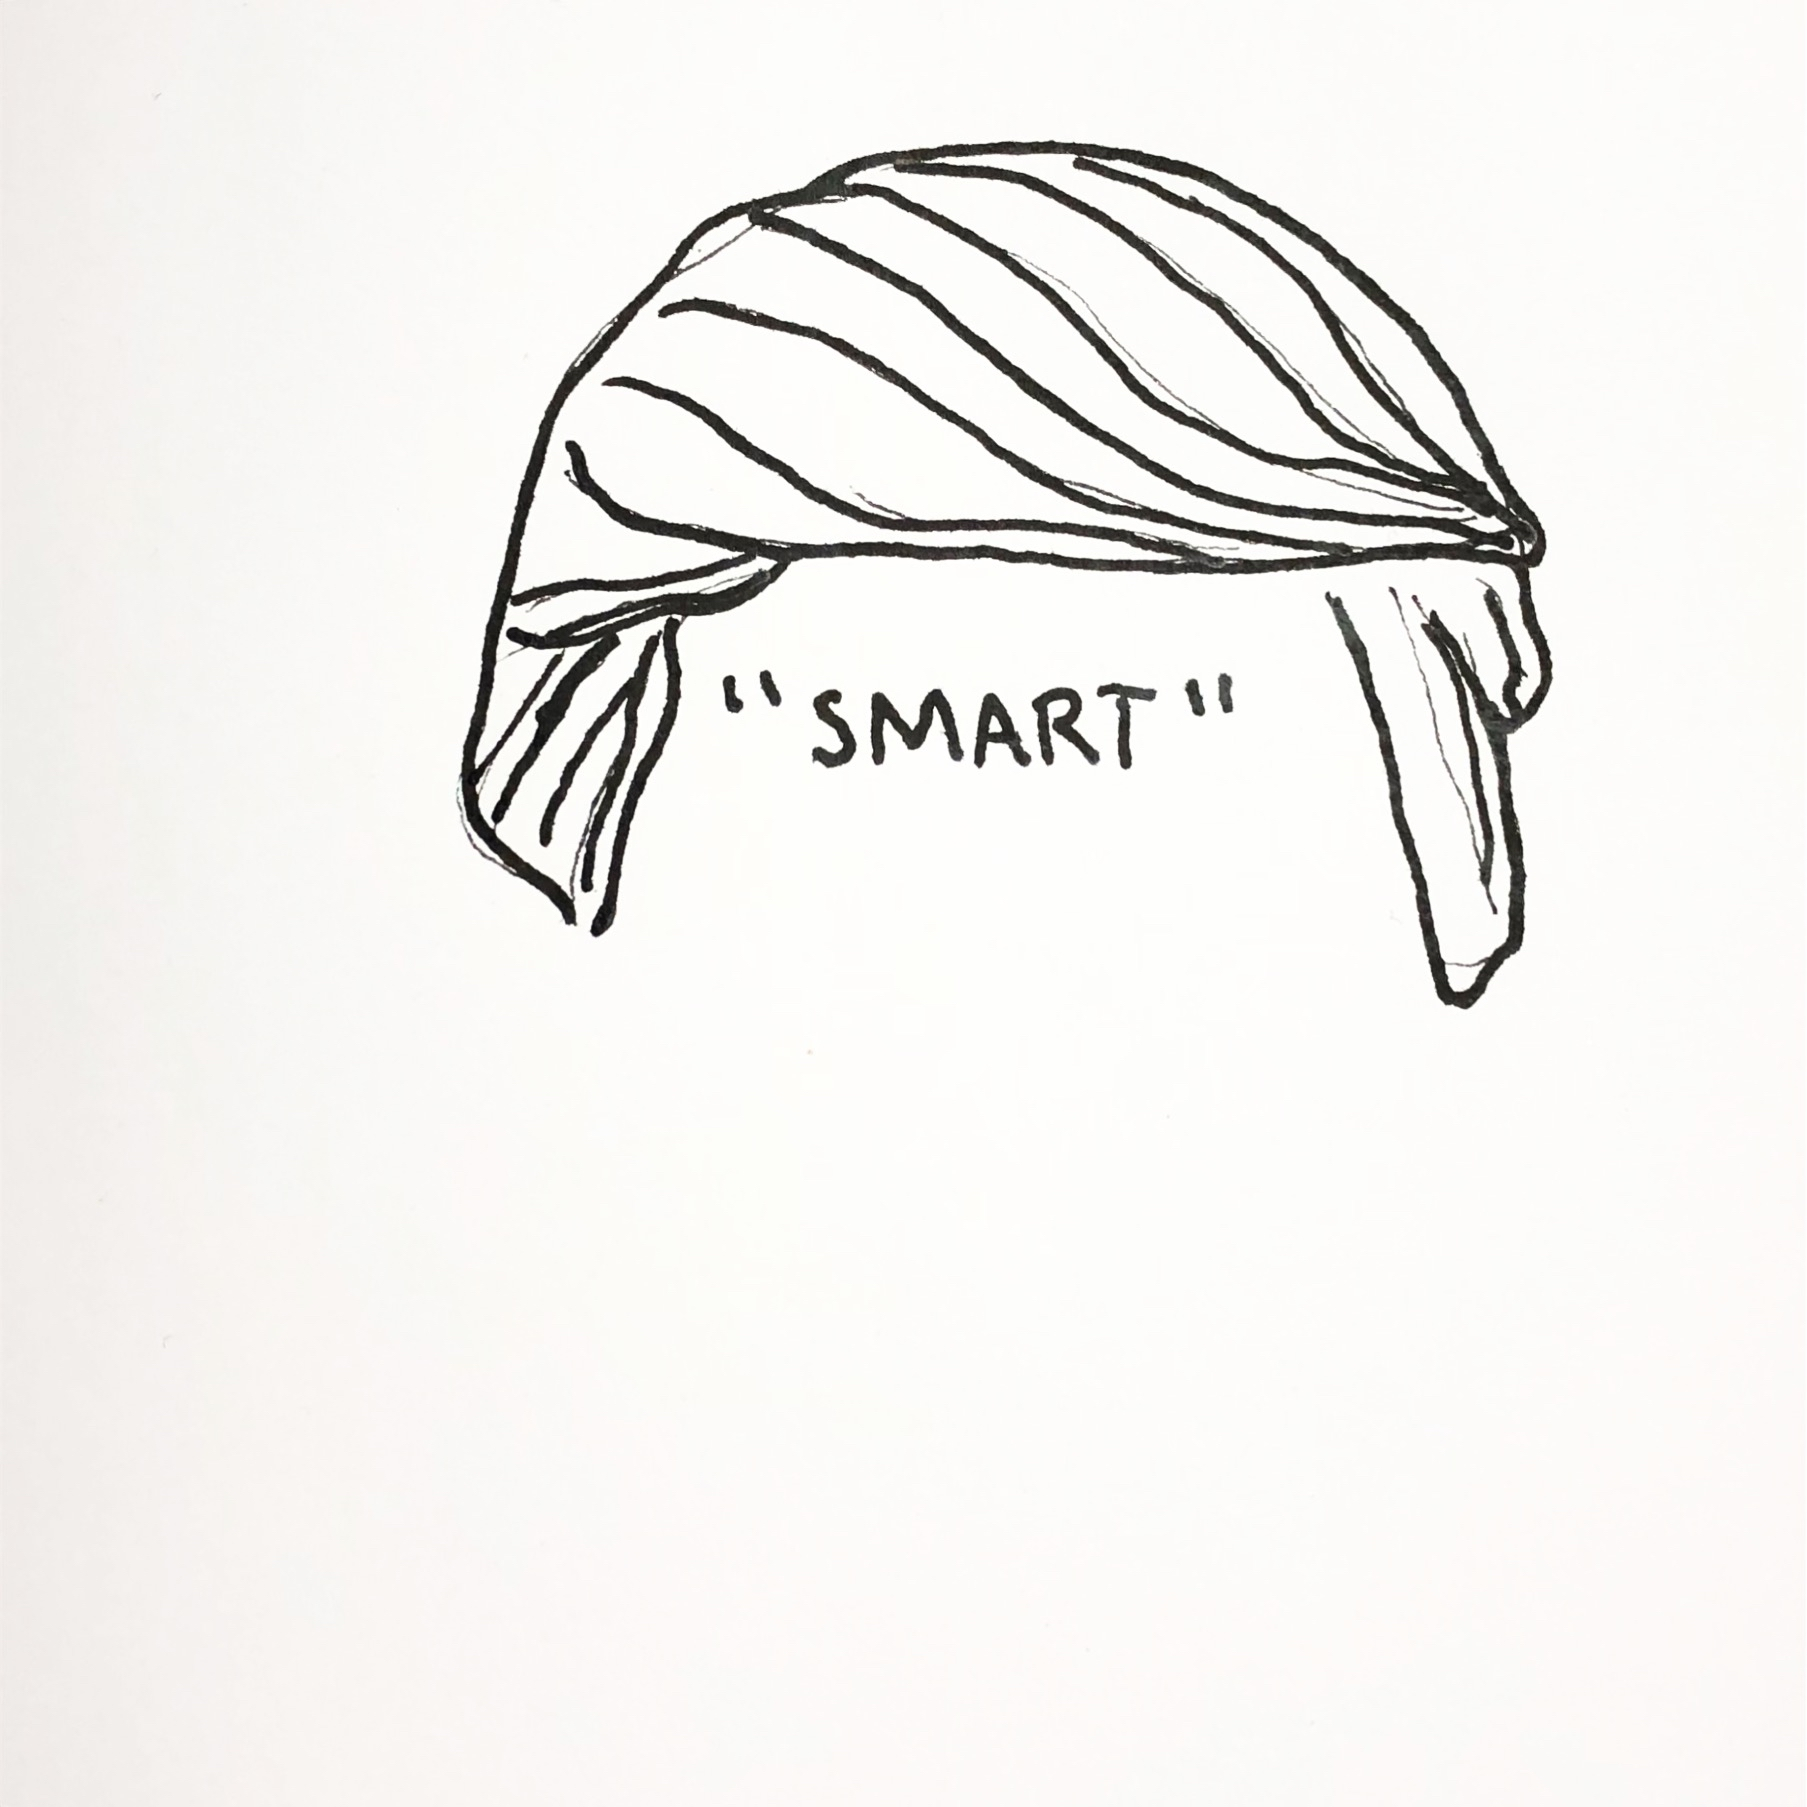 Smart: A word added to anything to denote that there's digital technology included, supposedly making the thing itself smart. https://t.co/Fdu5P4DBF9